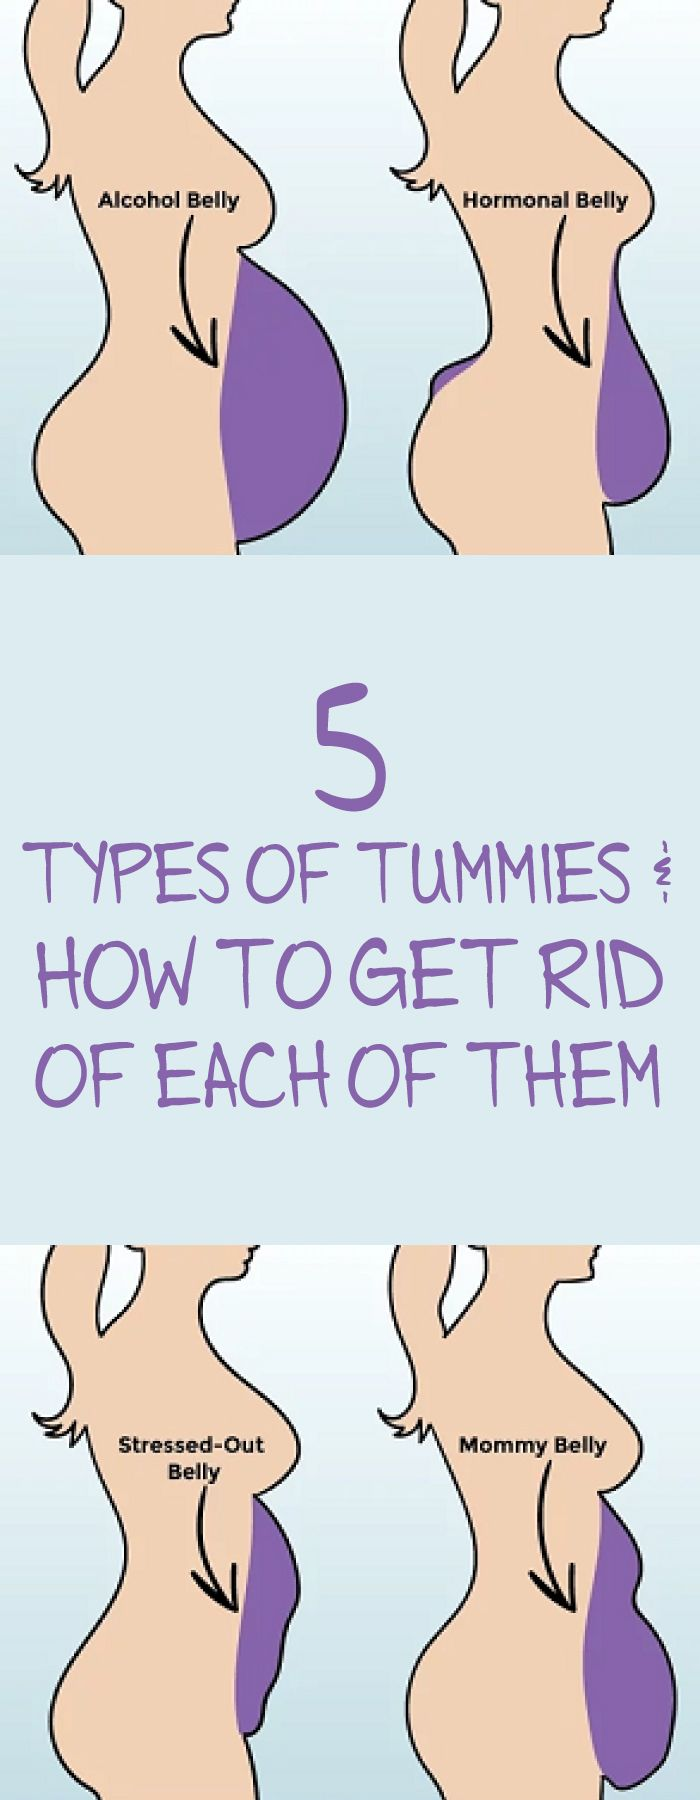 5 Types of Tummies and How to Get Rid of Each of Them